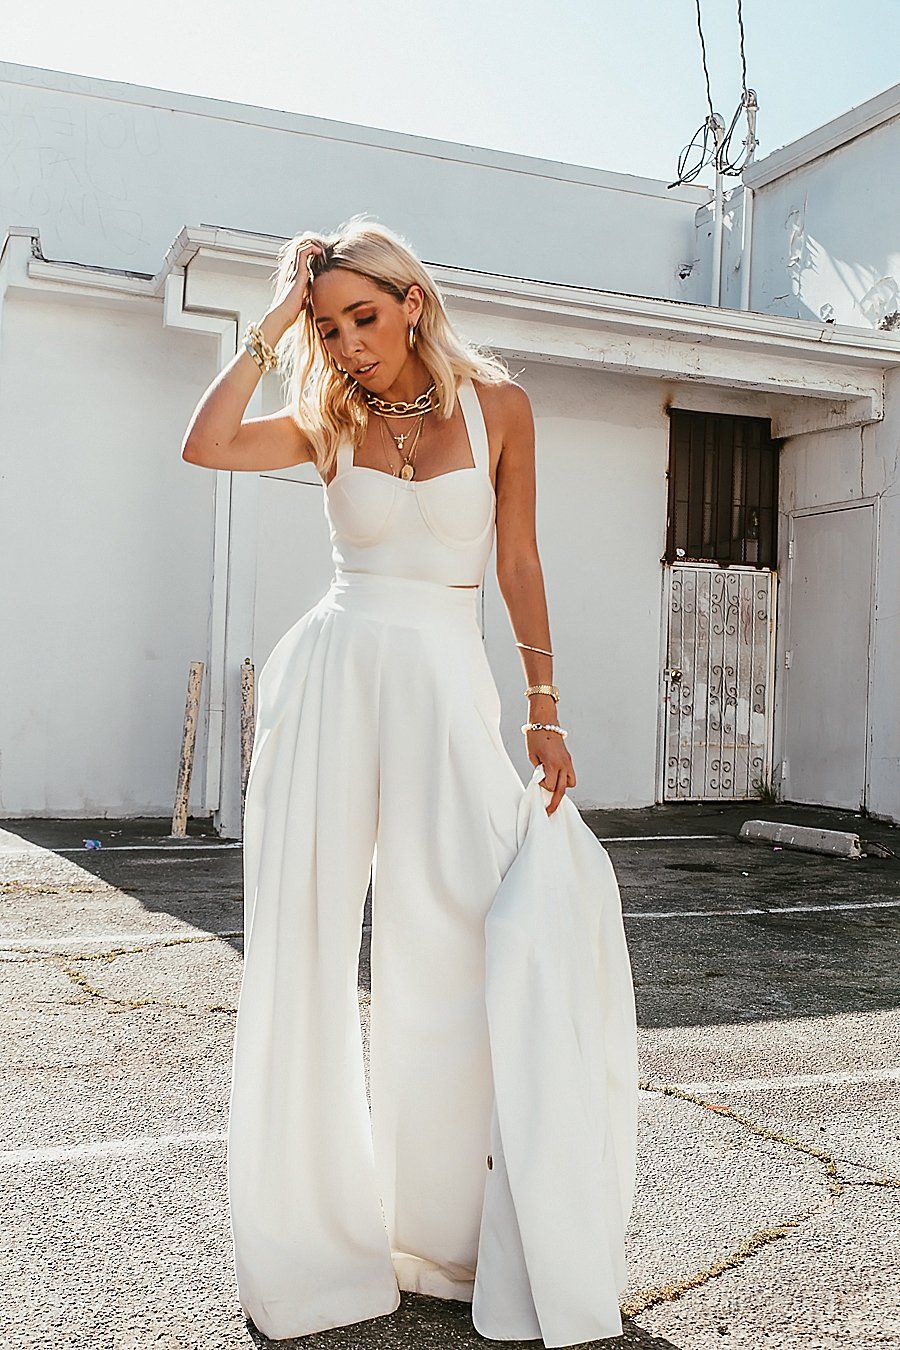 Raya High Waisted Wide Leg Pant White Pre Order In 2021 Wide Leg Pants Outfit High Fashion Outfits Wide Leg Pants [ 1350 x 900 Pixel ]